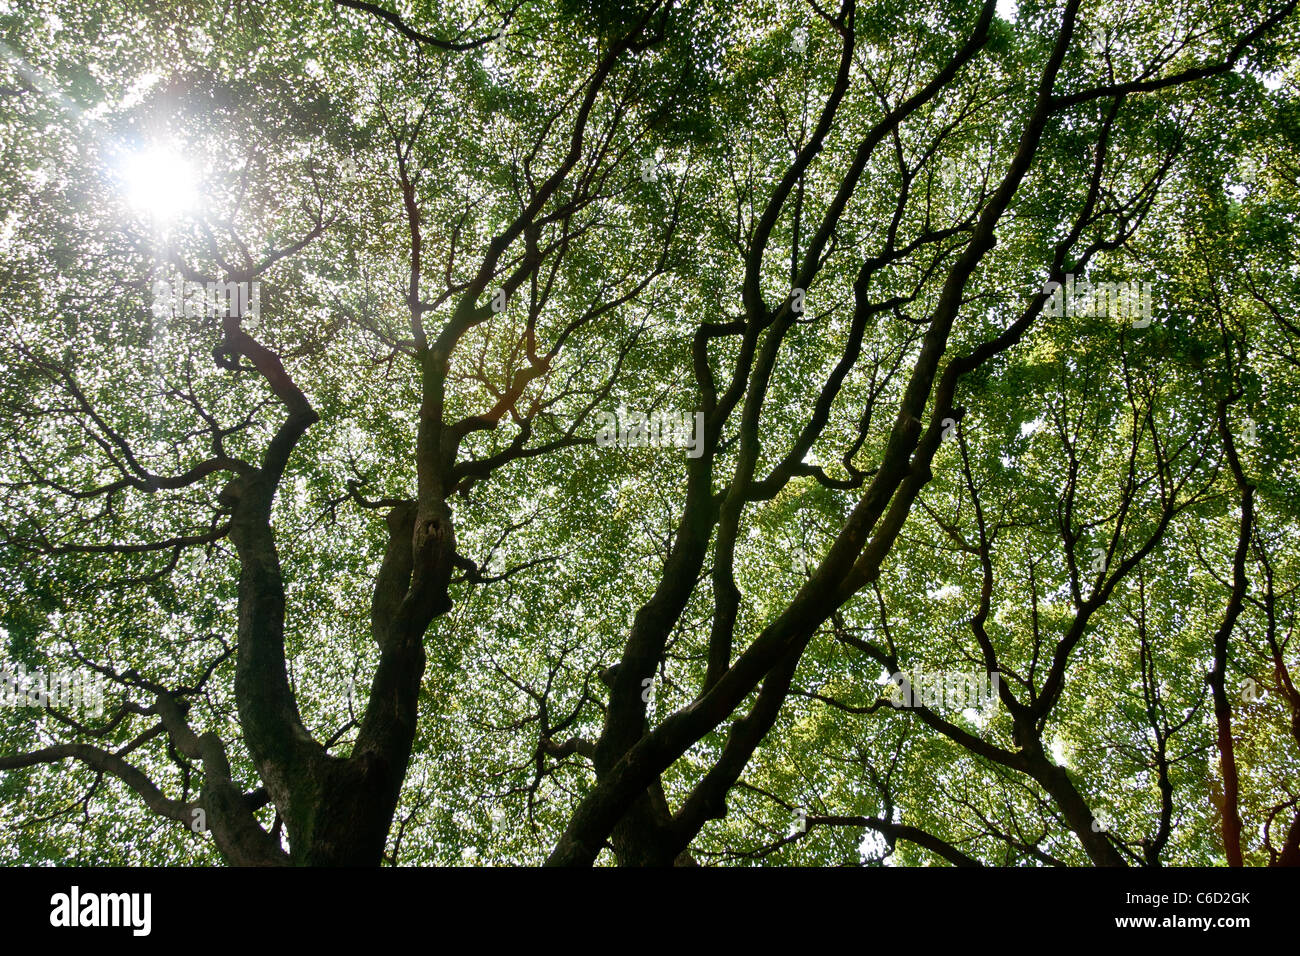 Branche and foliage of canopy taking up the whole sky will sun shining through Stock Photo